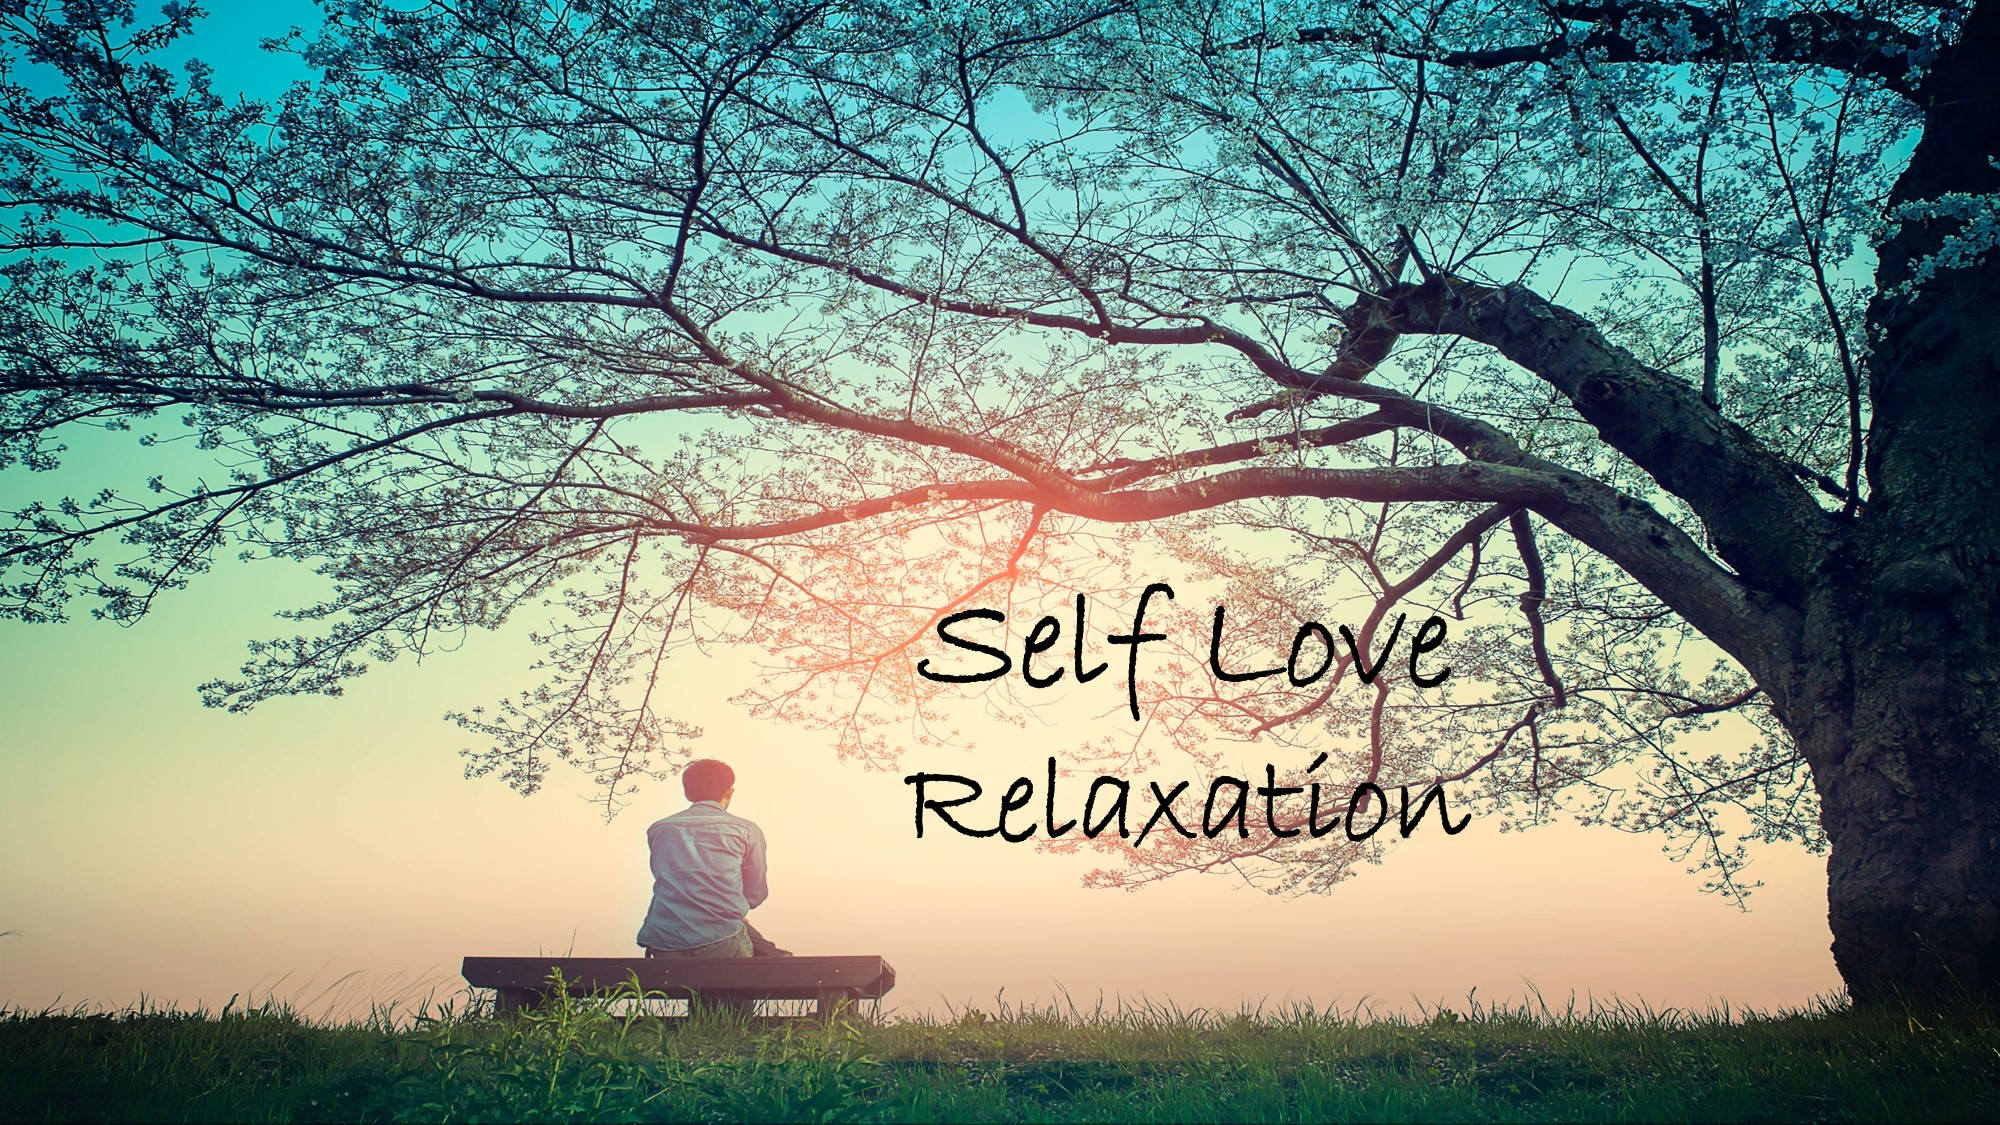 Relaxation - Feeling stressed or tense? Enjoy as your muscles loosen up using the power of hypnosis.Journey into nature as you feel so wonderfully as ease and connected as all your cares fade away.